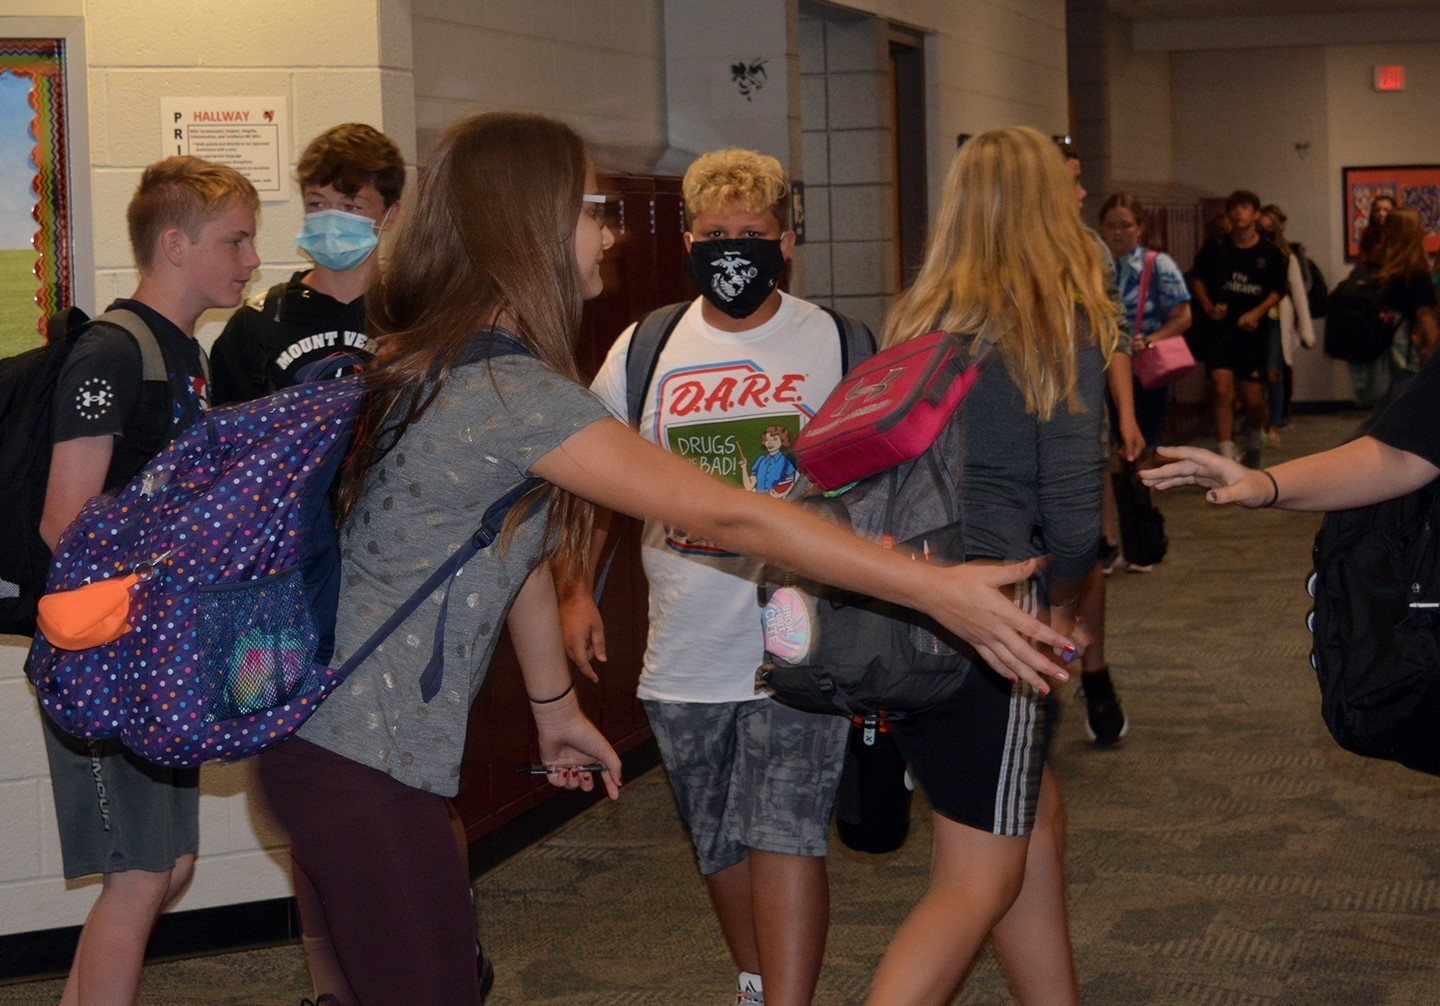 Students changing classes in the Middle School hallway.